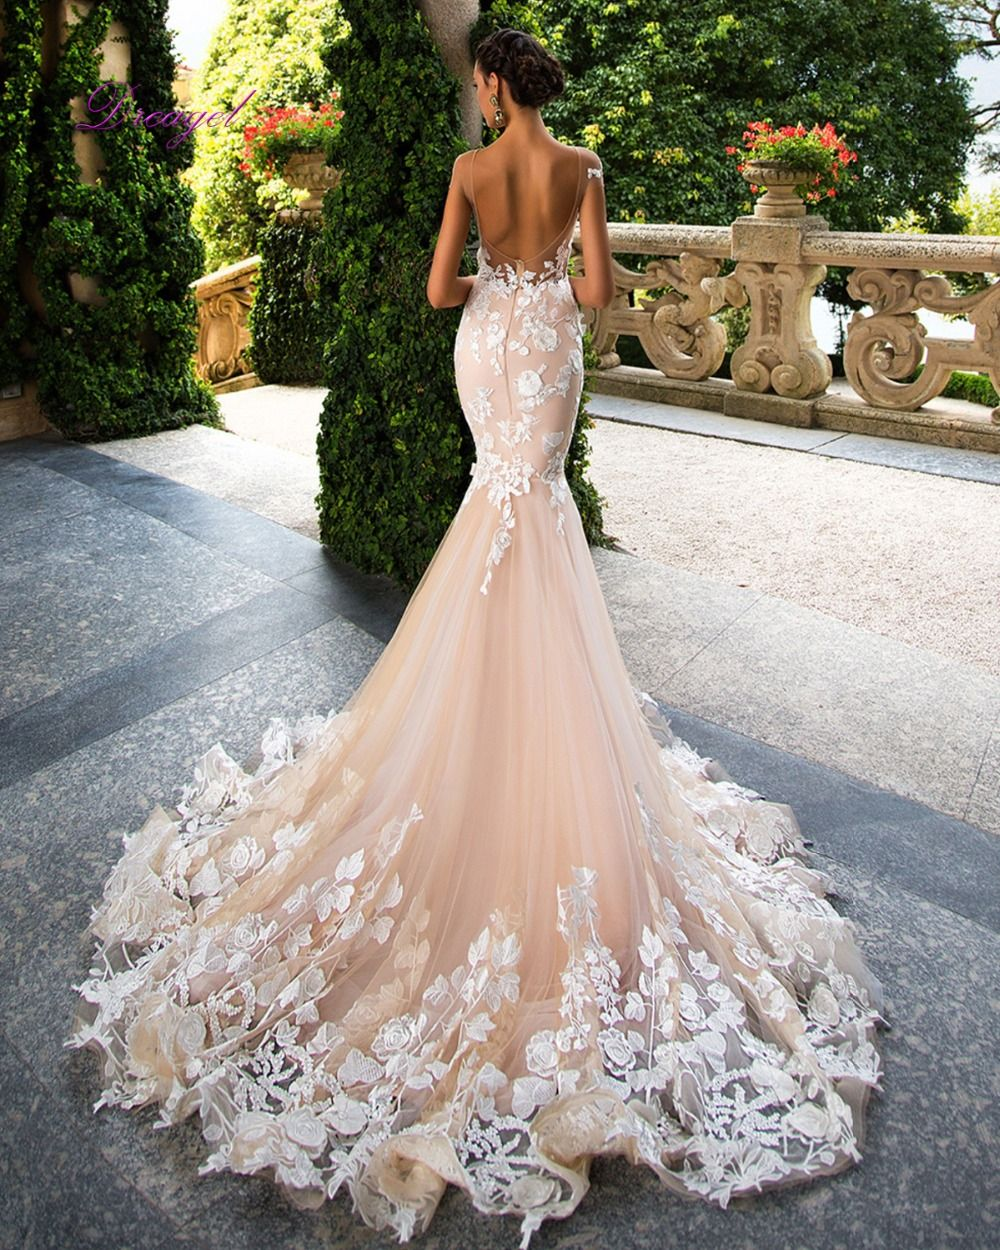 Photo of US $389.99 |Fmogl Sexy Backless Applique Mermaid Wedding Dresses 2019 New Arrival Embroidered Organza Court Train Vestido de Noiva Plus Size|vestido de noiva|vestido de noiva plusde noiva – AliExpress